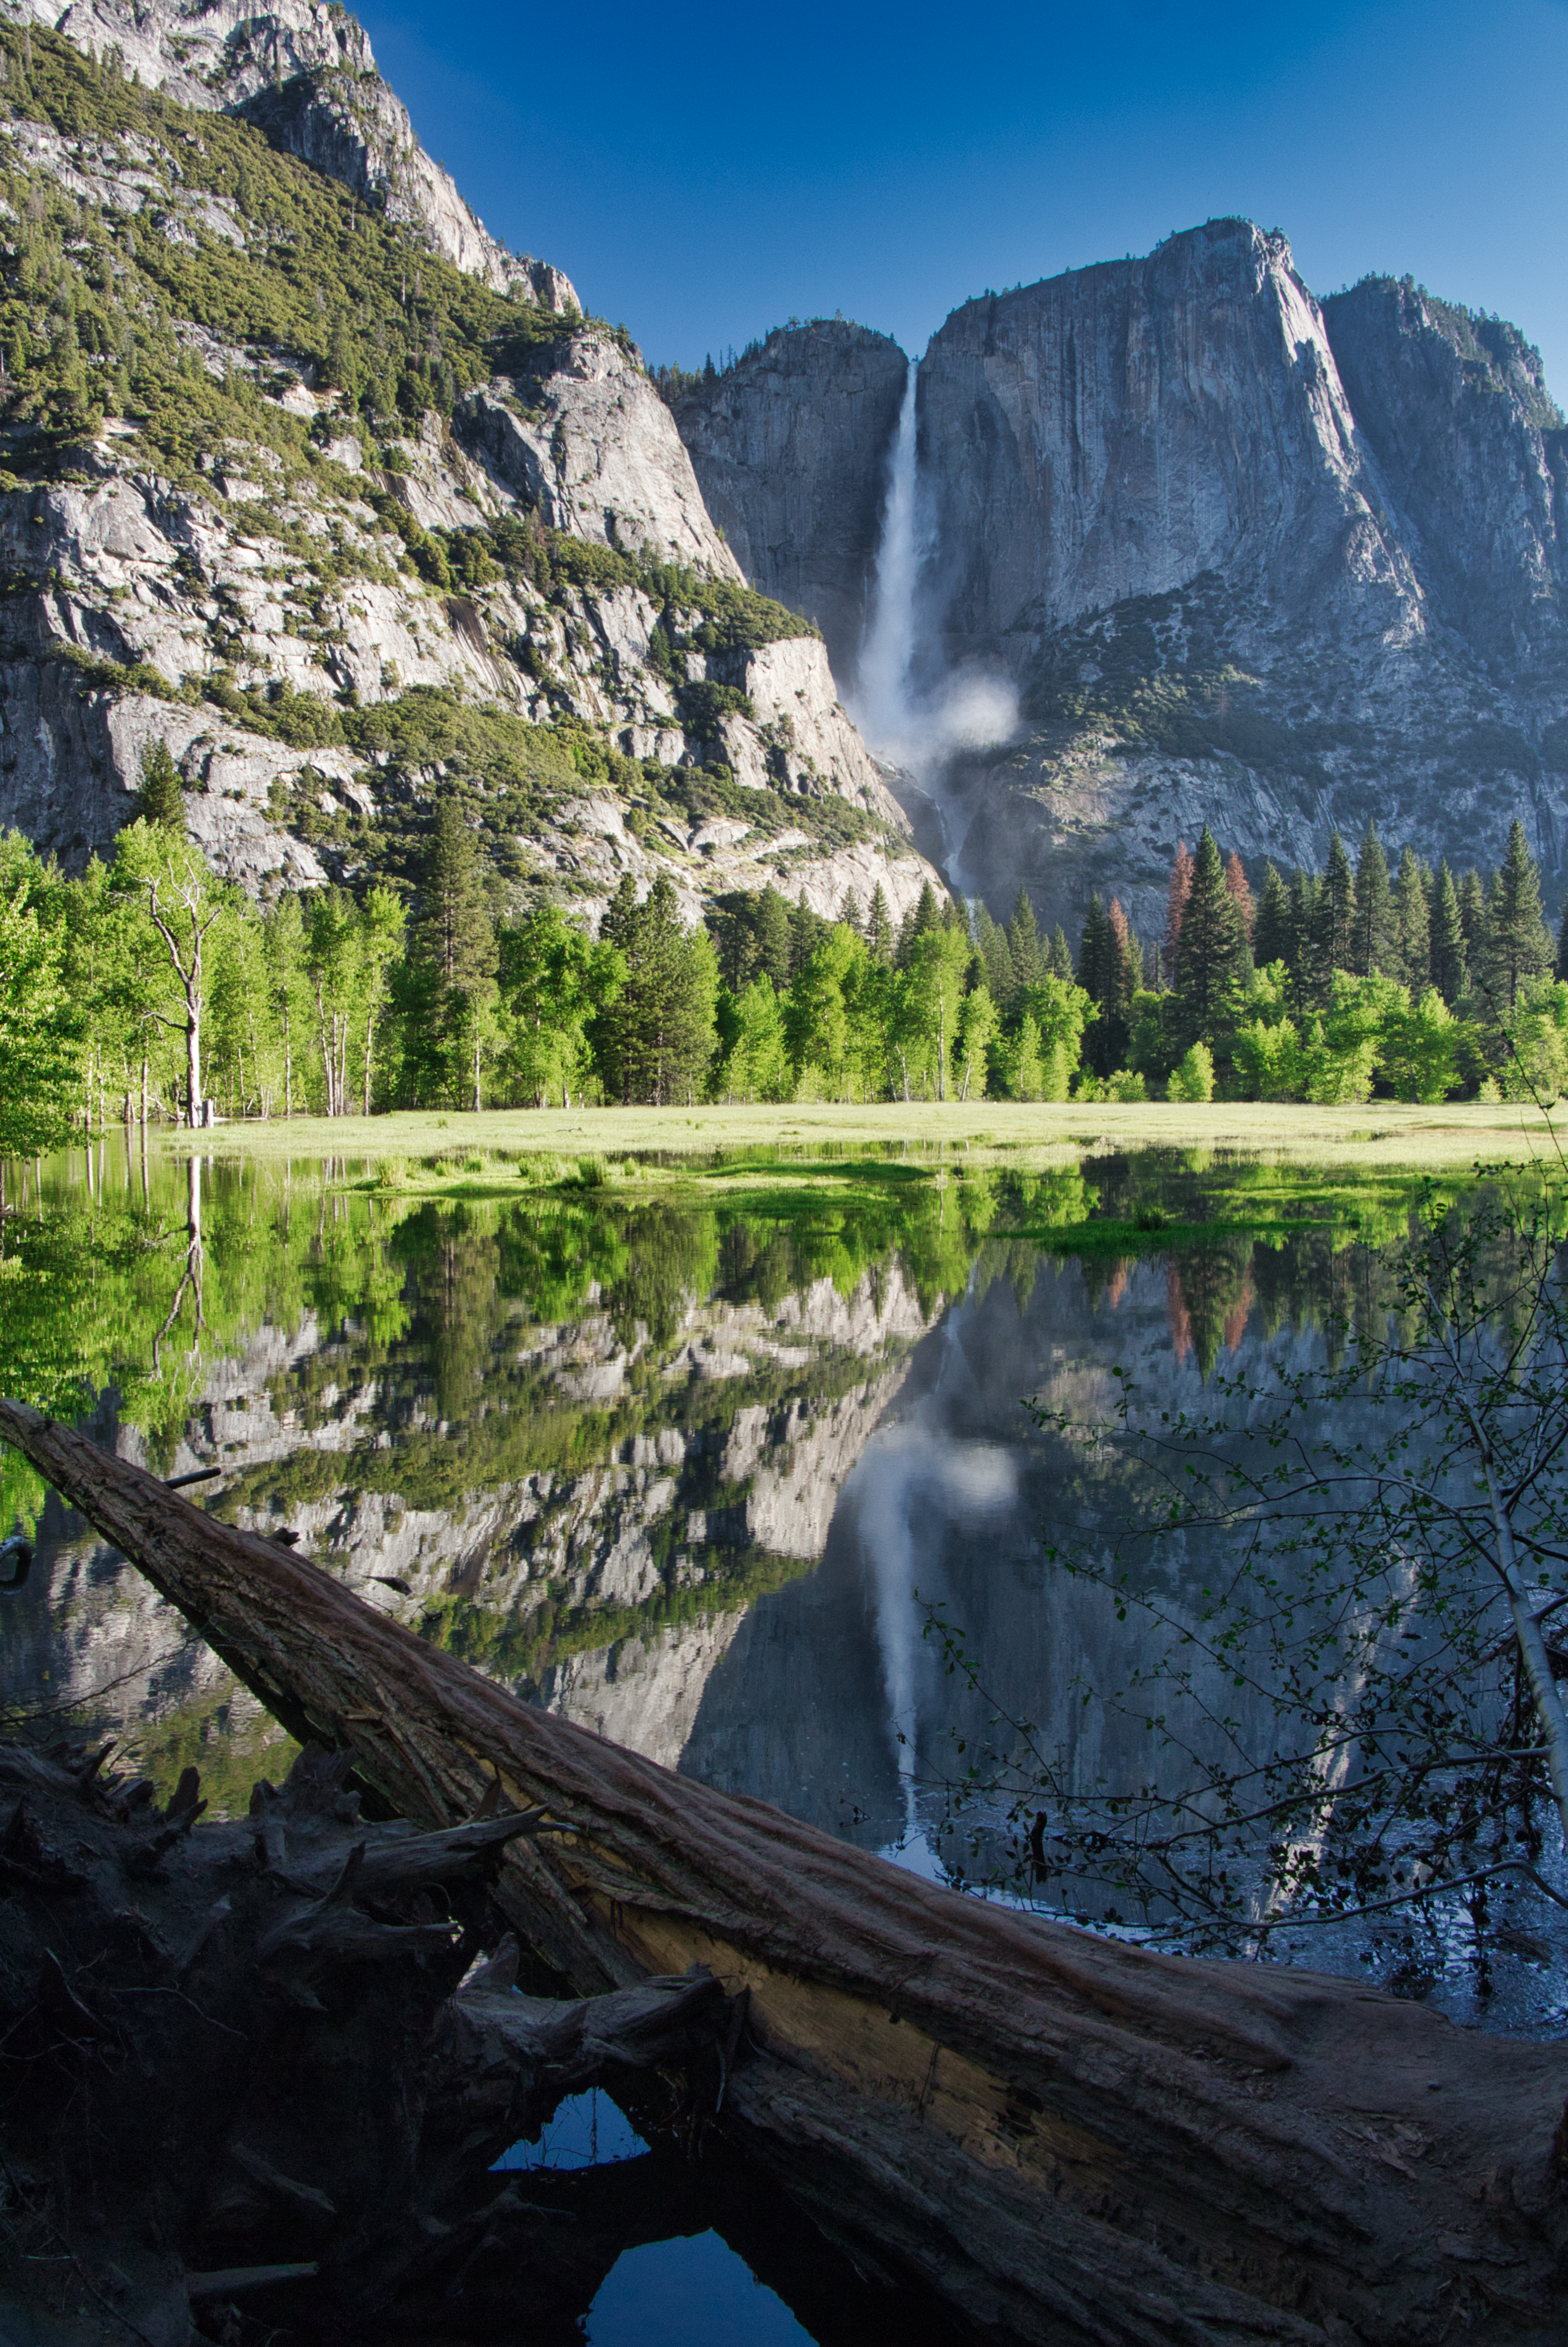 Base of Bridal Veil Falls in Yosemite